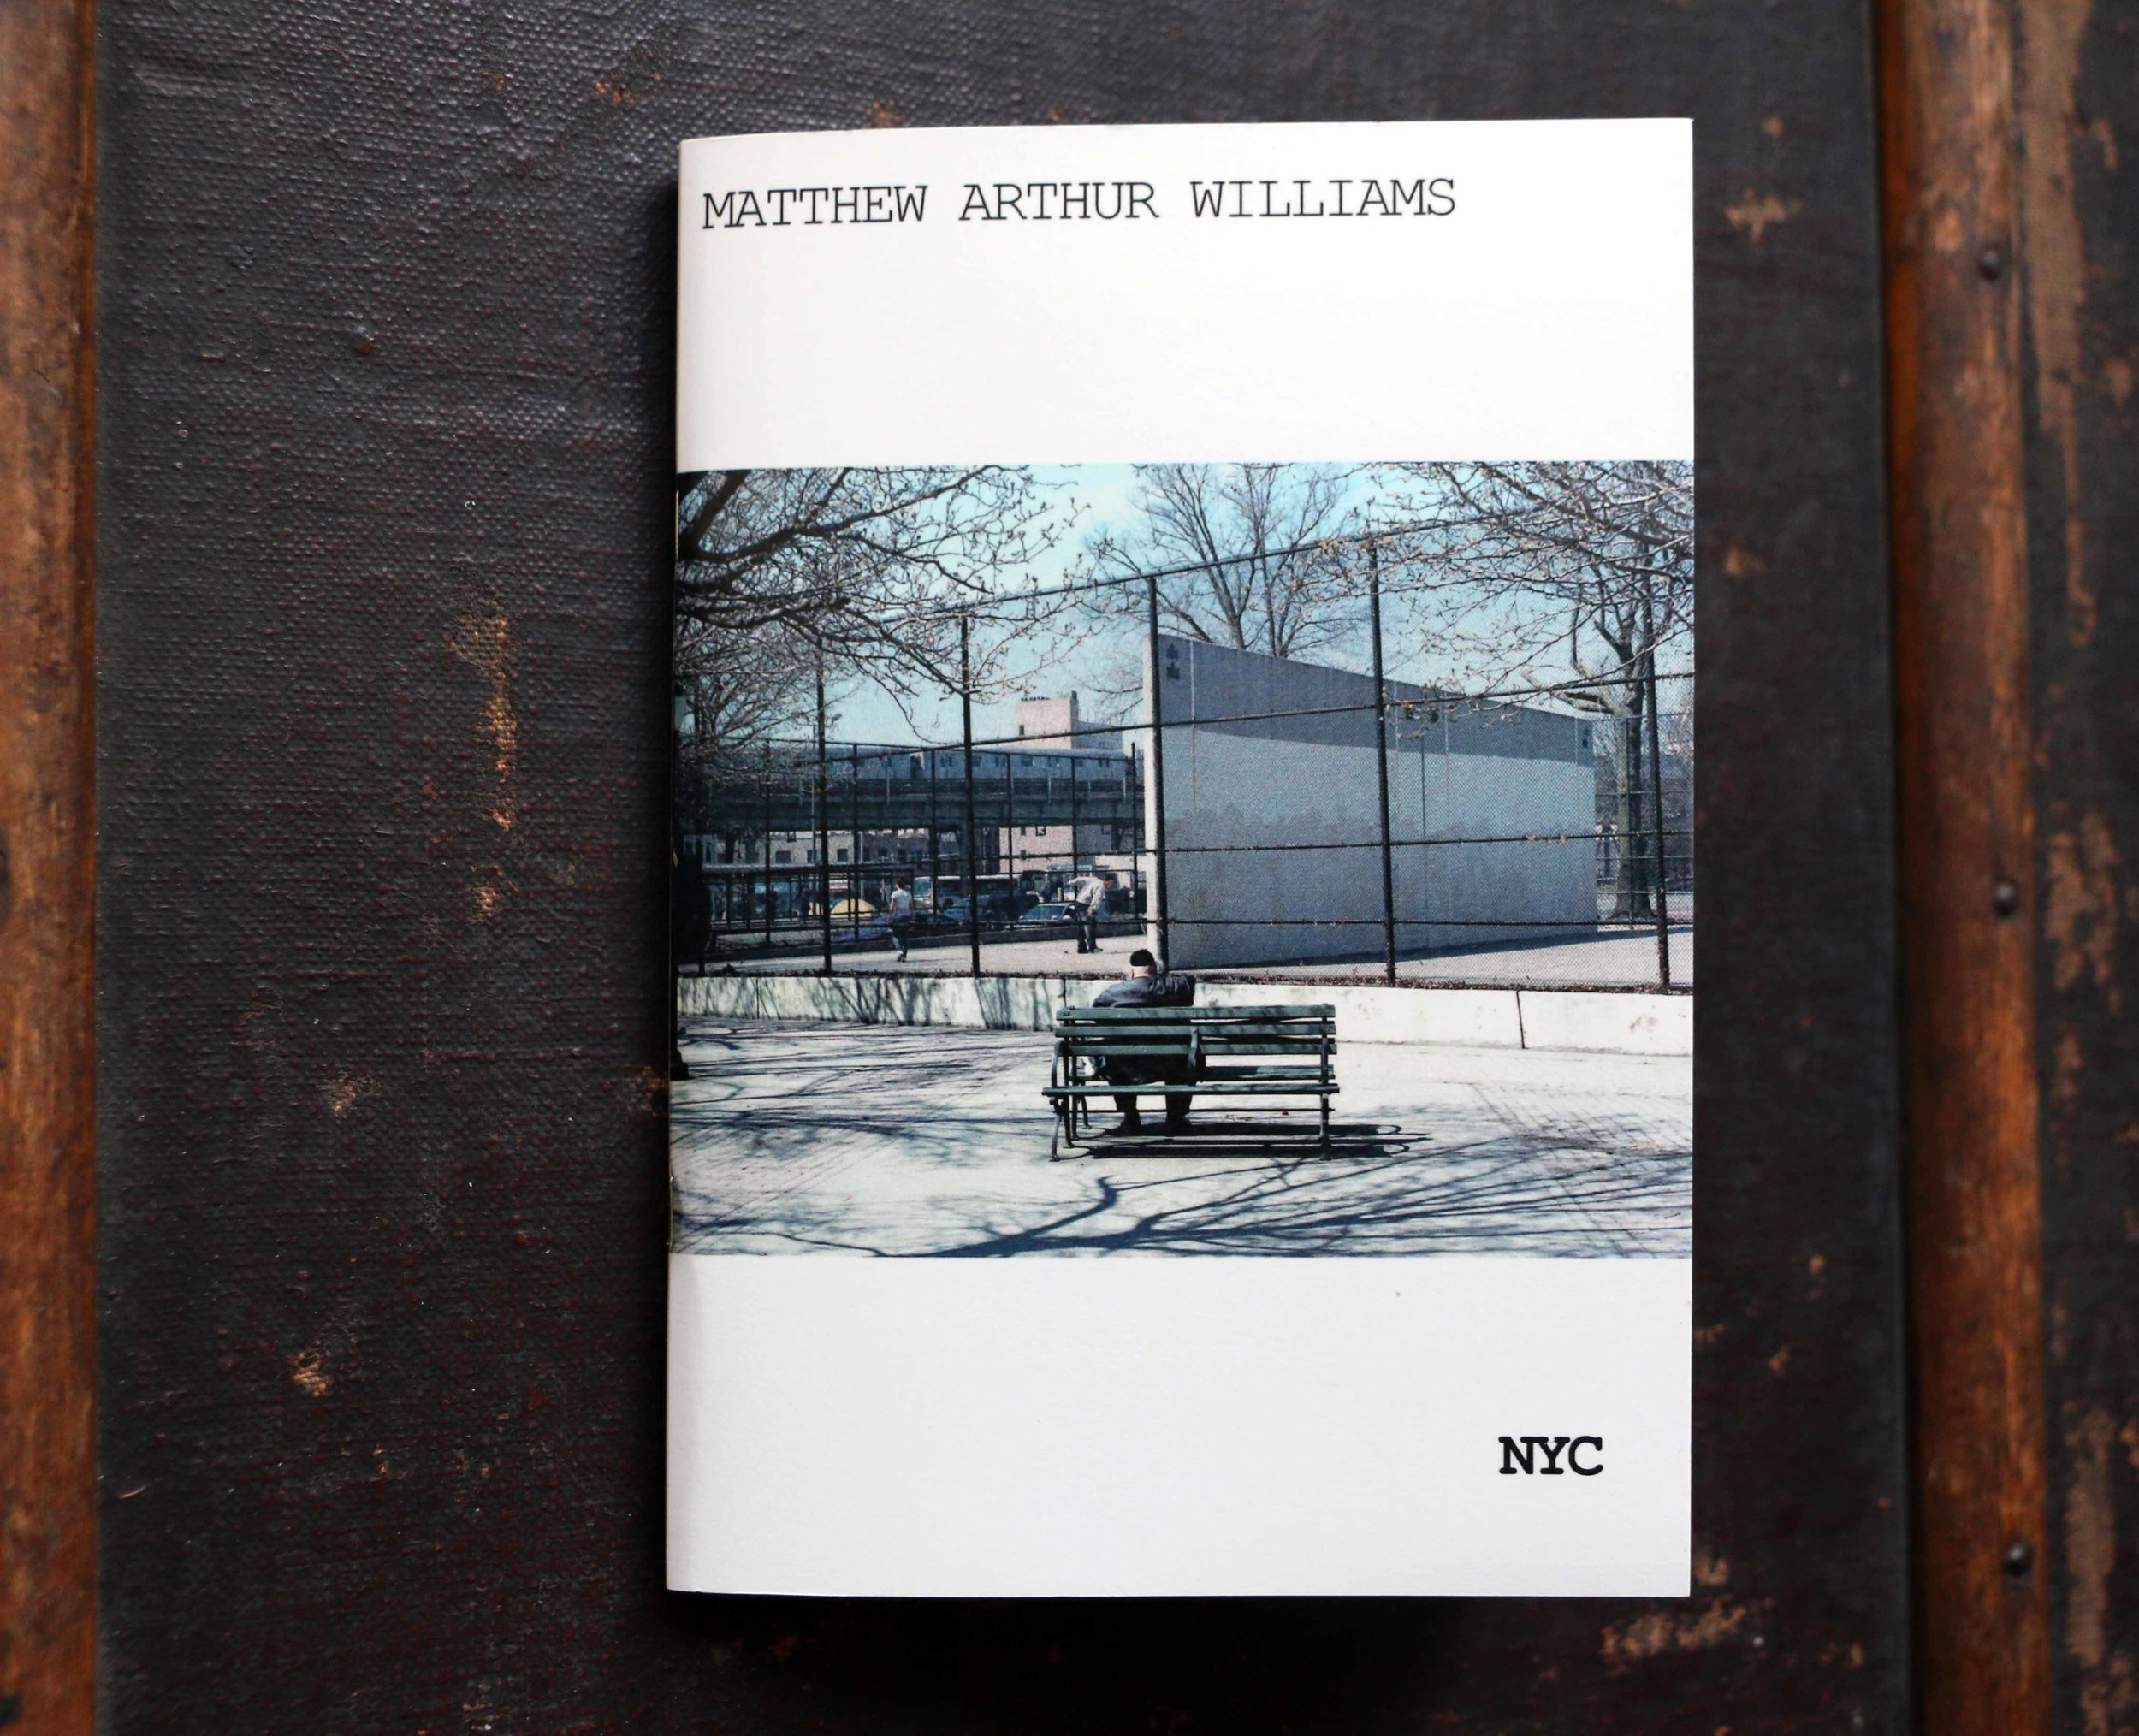 NYC    A5, 56 pages, Full color digitally printed, Saddle stitched, Softcover, Hand numbered, Ed. of 100, 2015   An intimate, subtle view of New York City mixed with snippets of poems by the city's own Langston Hughes.   Purchase from  Good Press ,  Street Level Photoworks and  Aye Aye Books (CCA Glasgow).